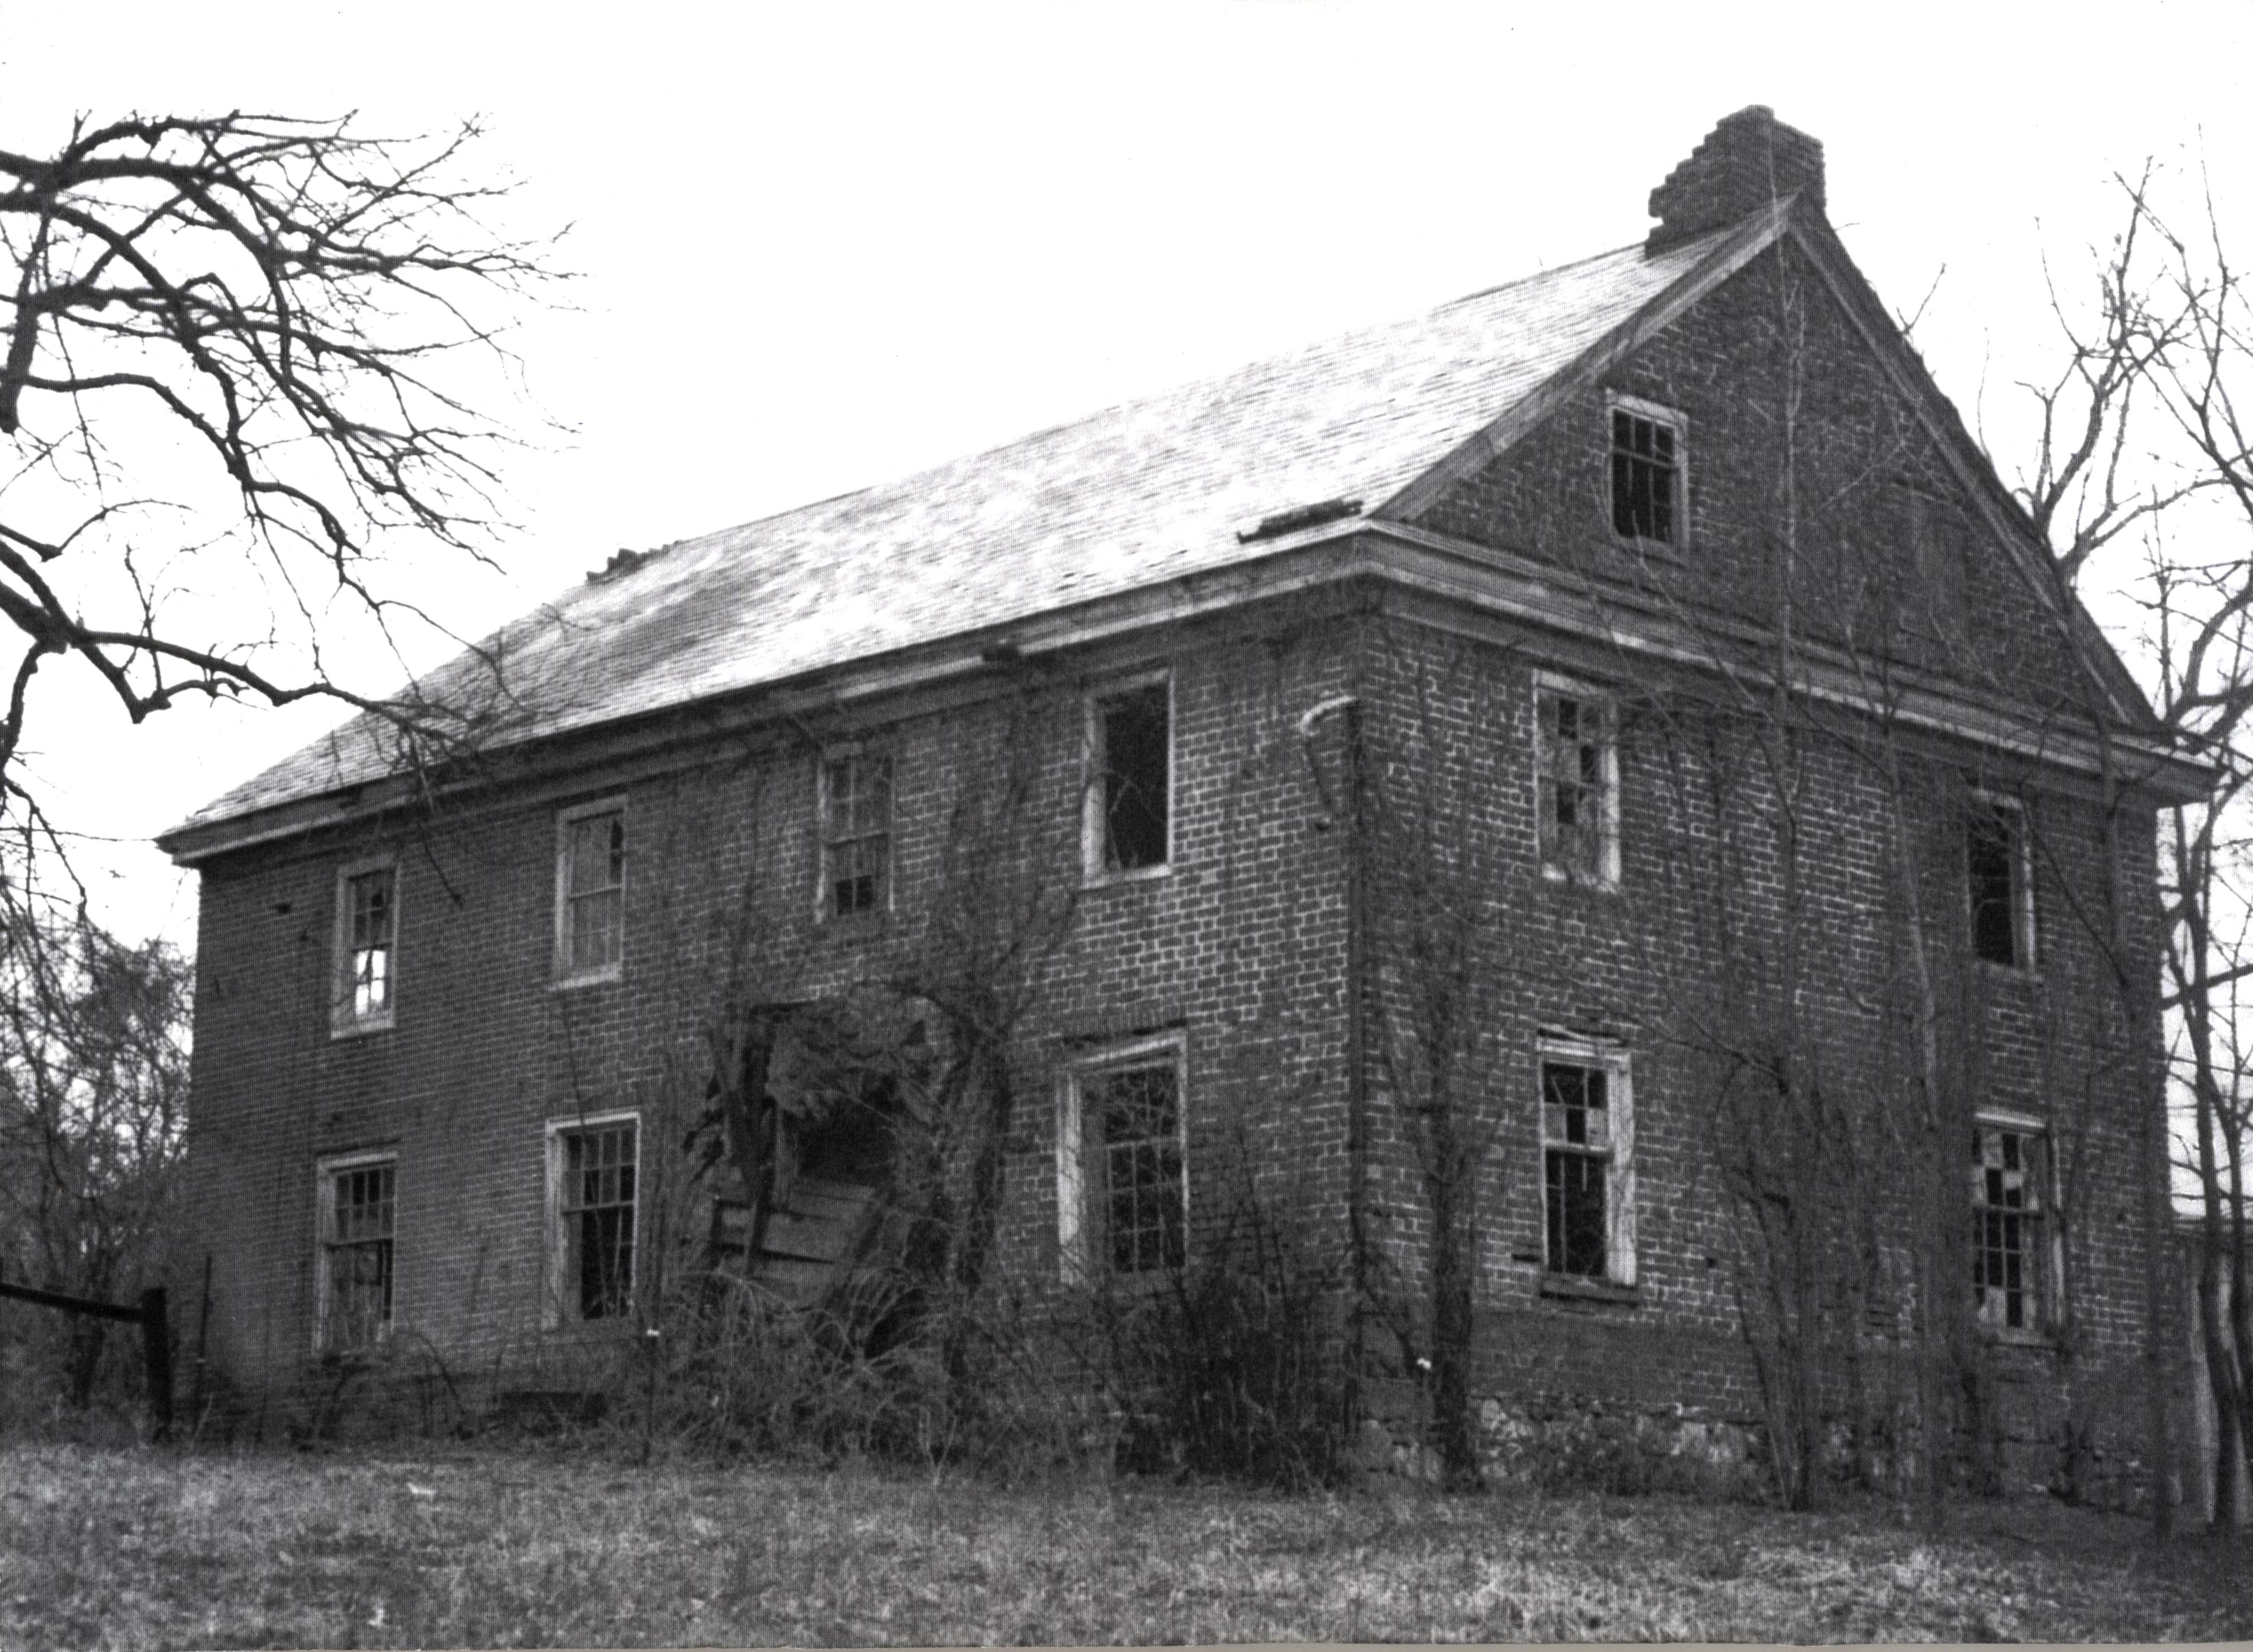 An old home with broken windows, a collapsed entryway, and visible damage to the roof, walls and chimney.